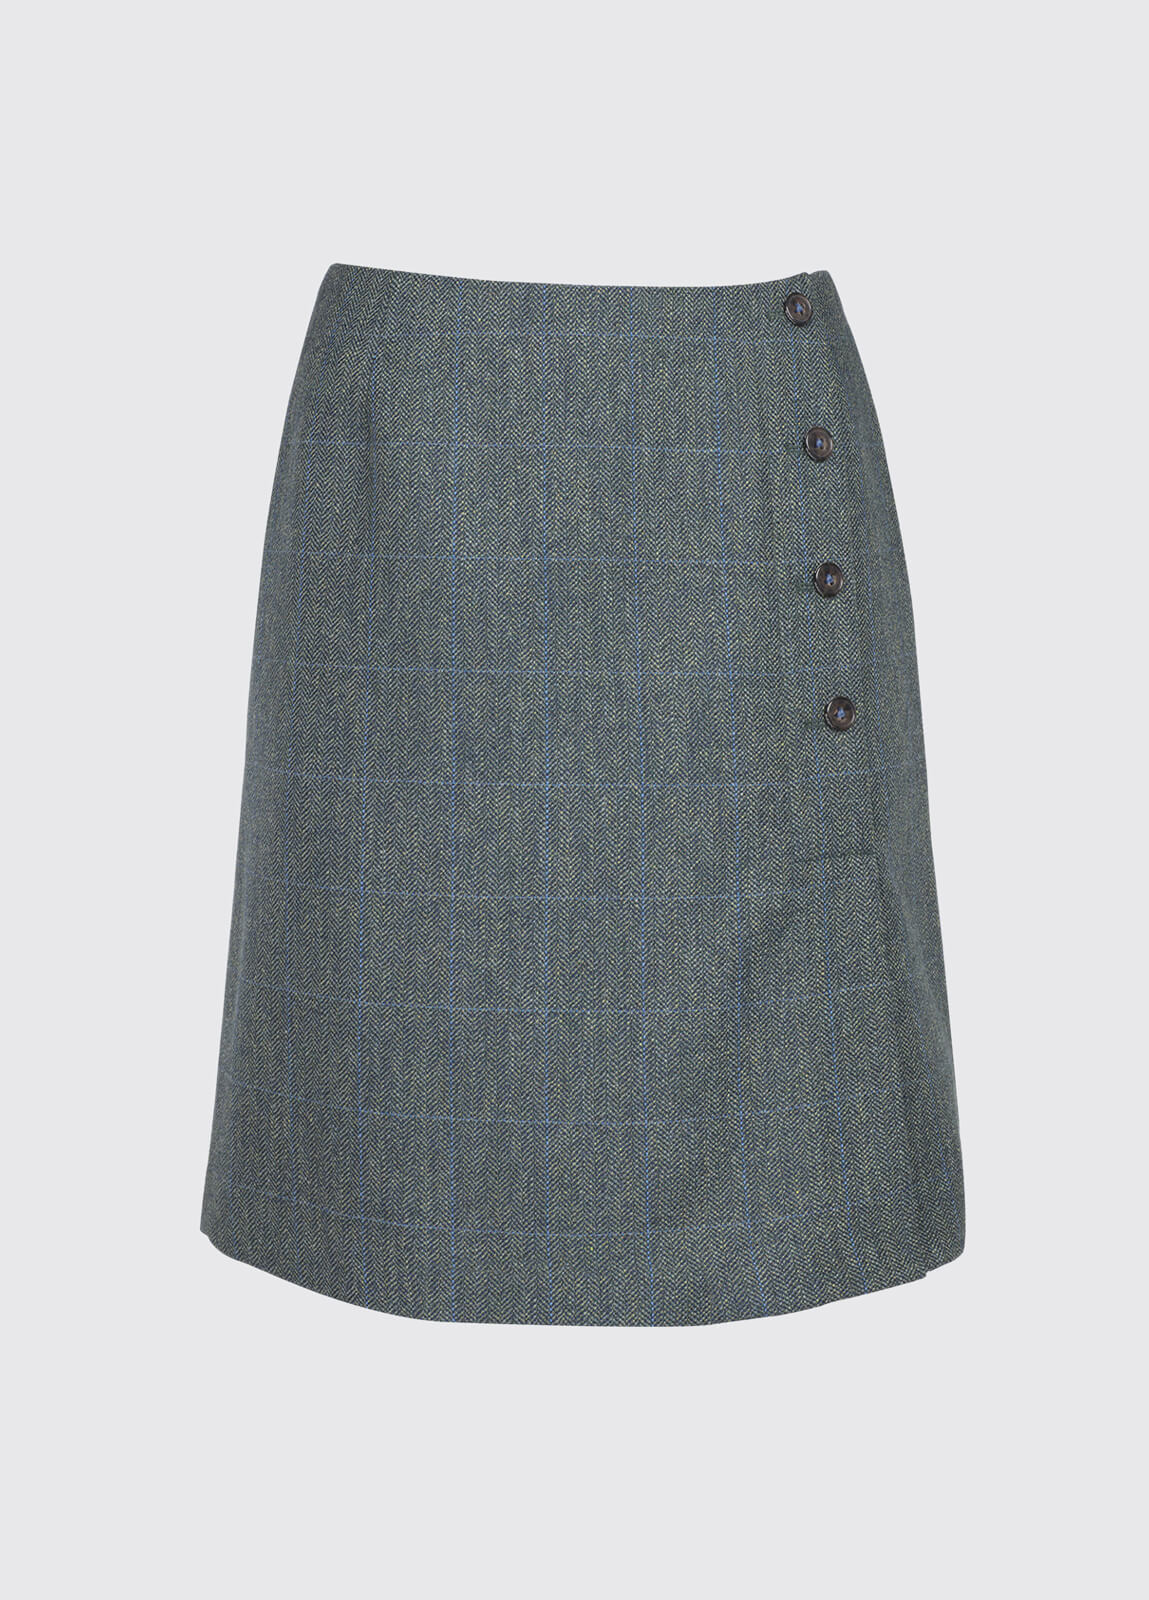 Marjoram Slim Tweed Skirt - Mist